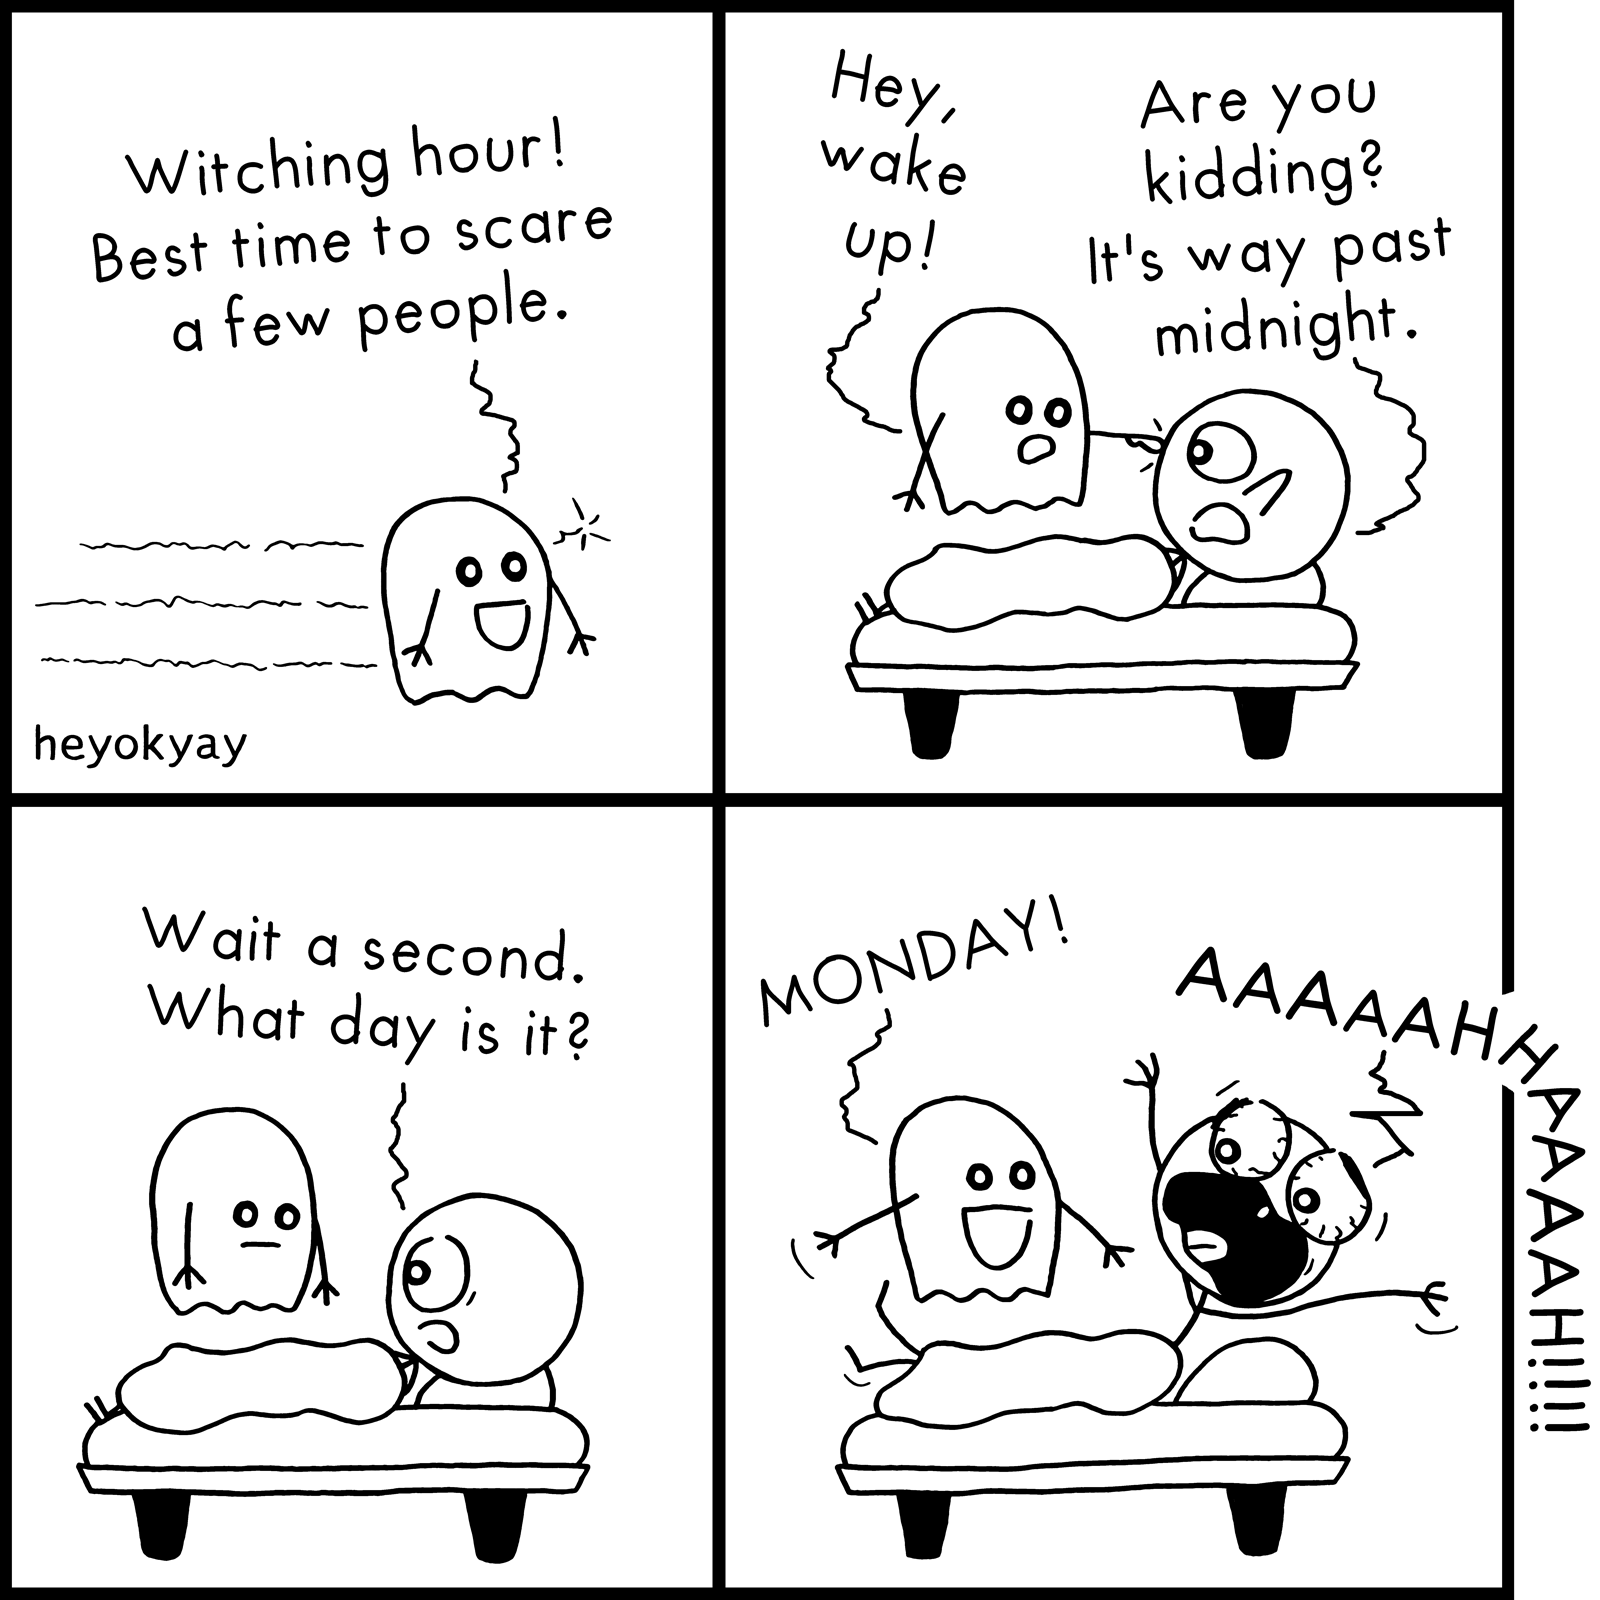 Witching Hour heyokyay comic